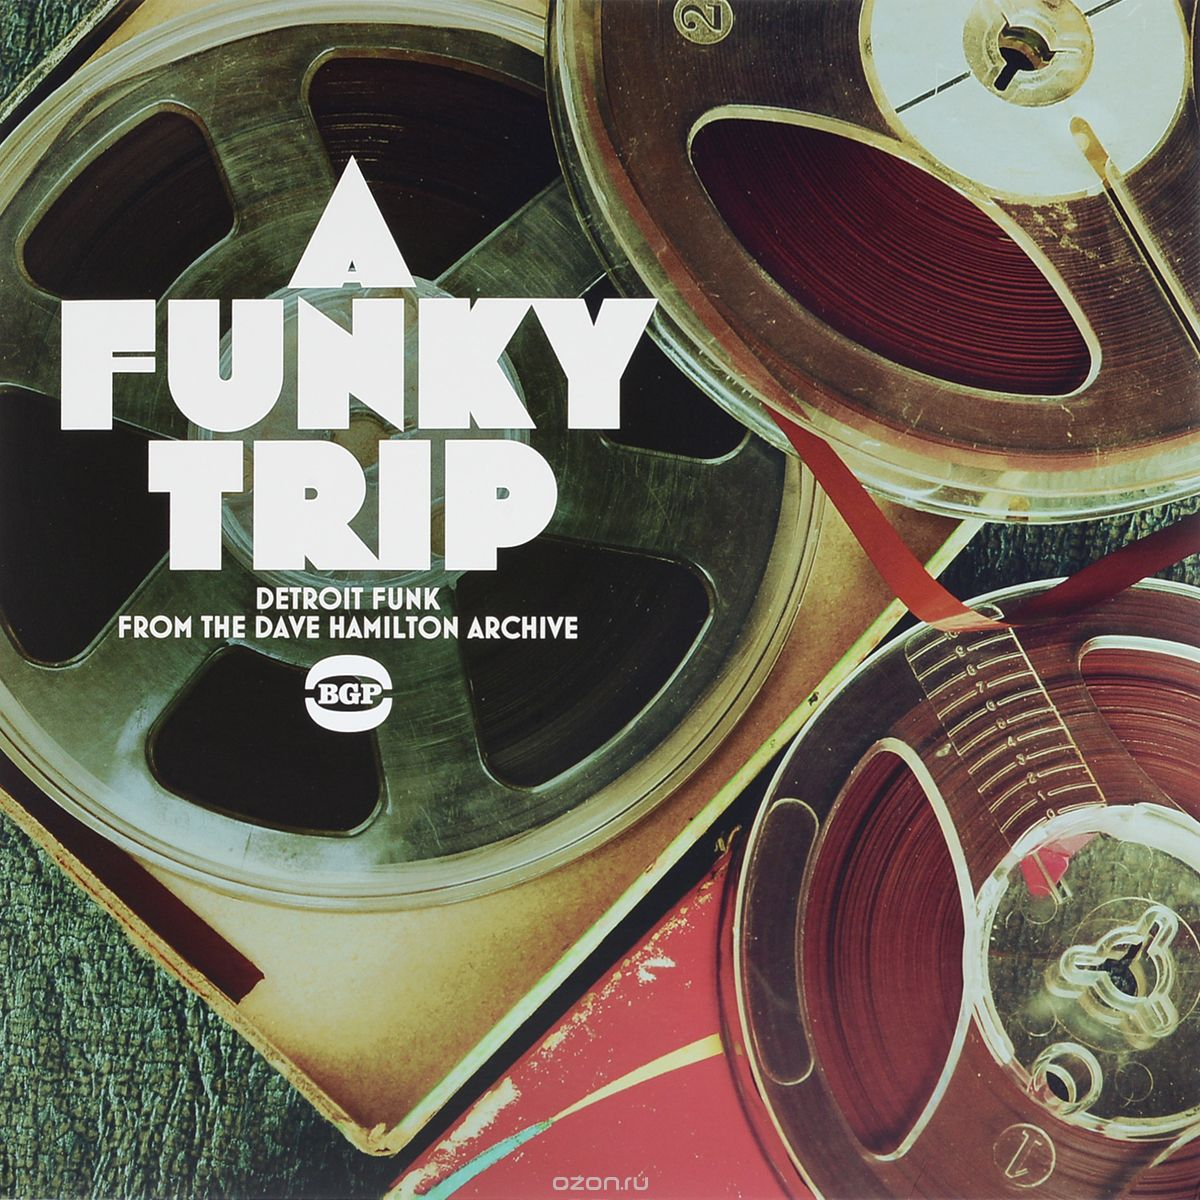 A Funky Trip - Detroit Funk From The Dave Hamilton Archive (LP)